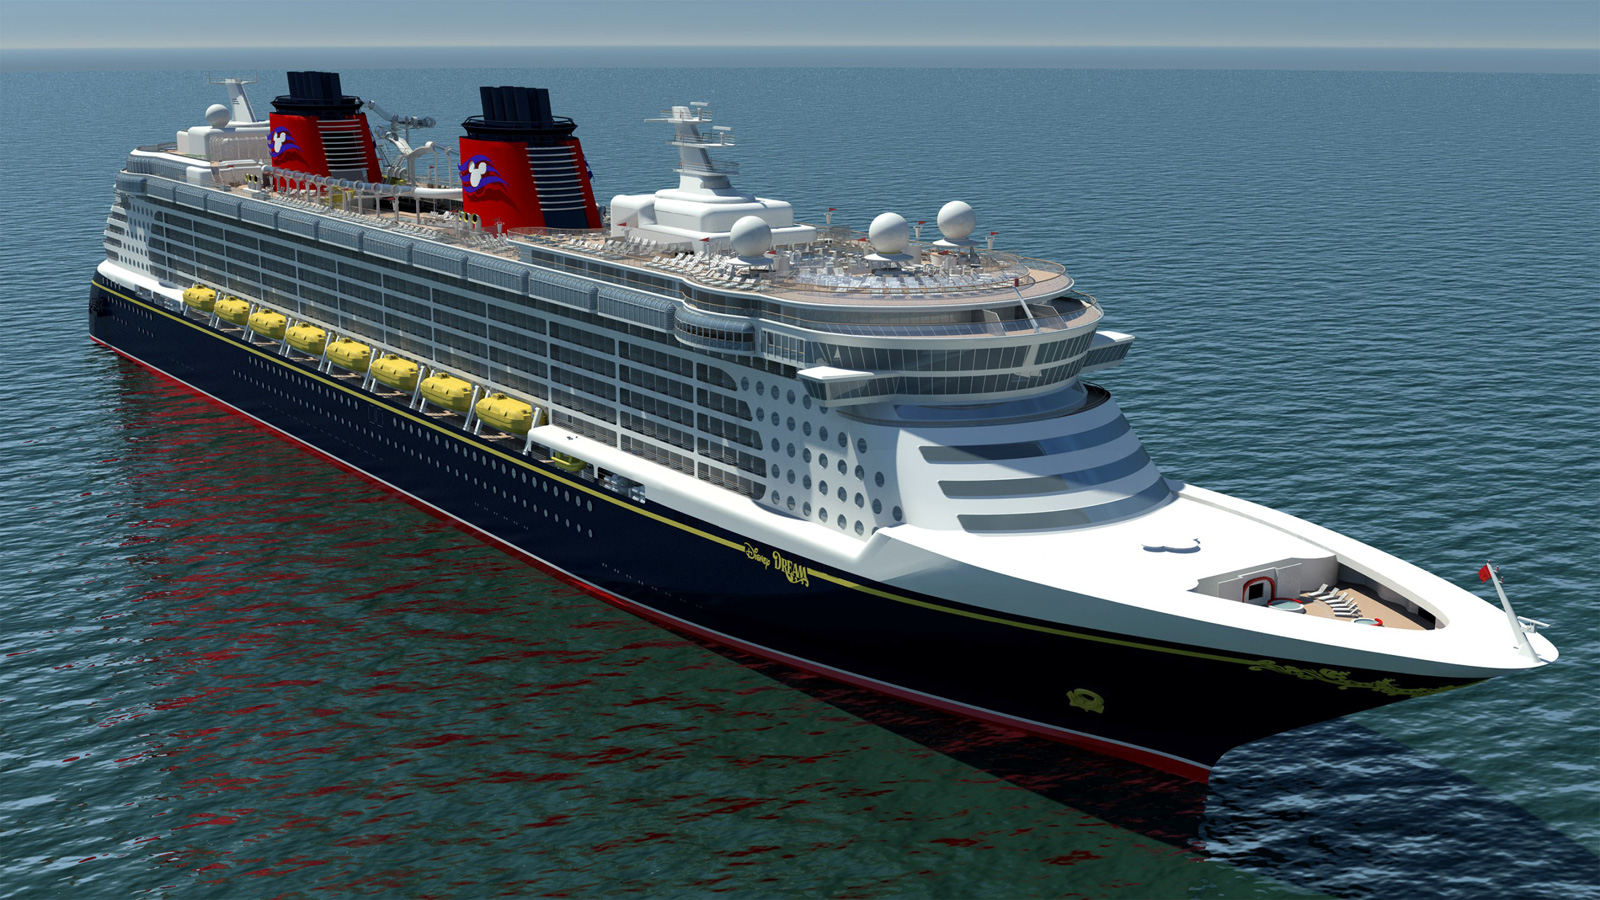 Dream Disney luxury cruise ships